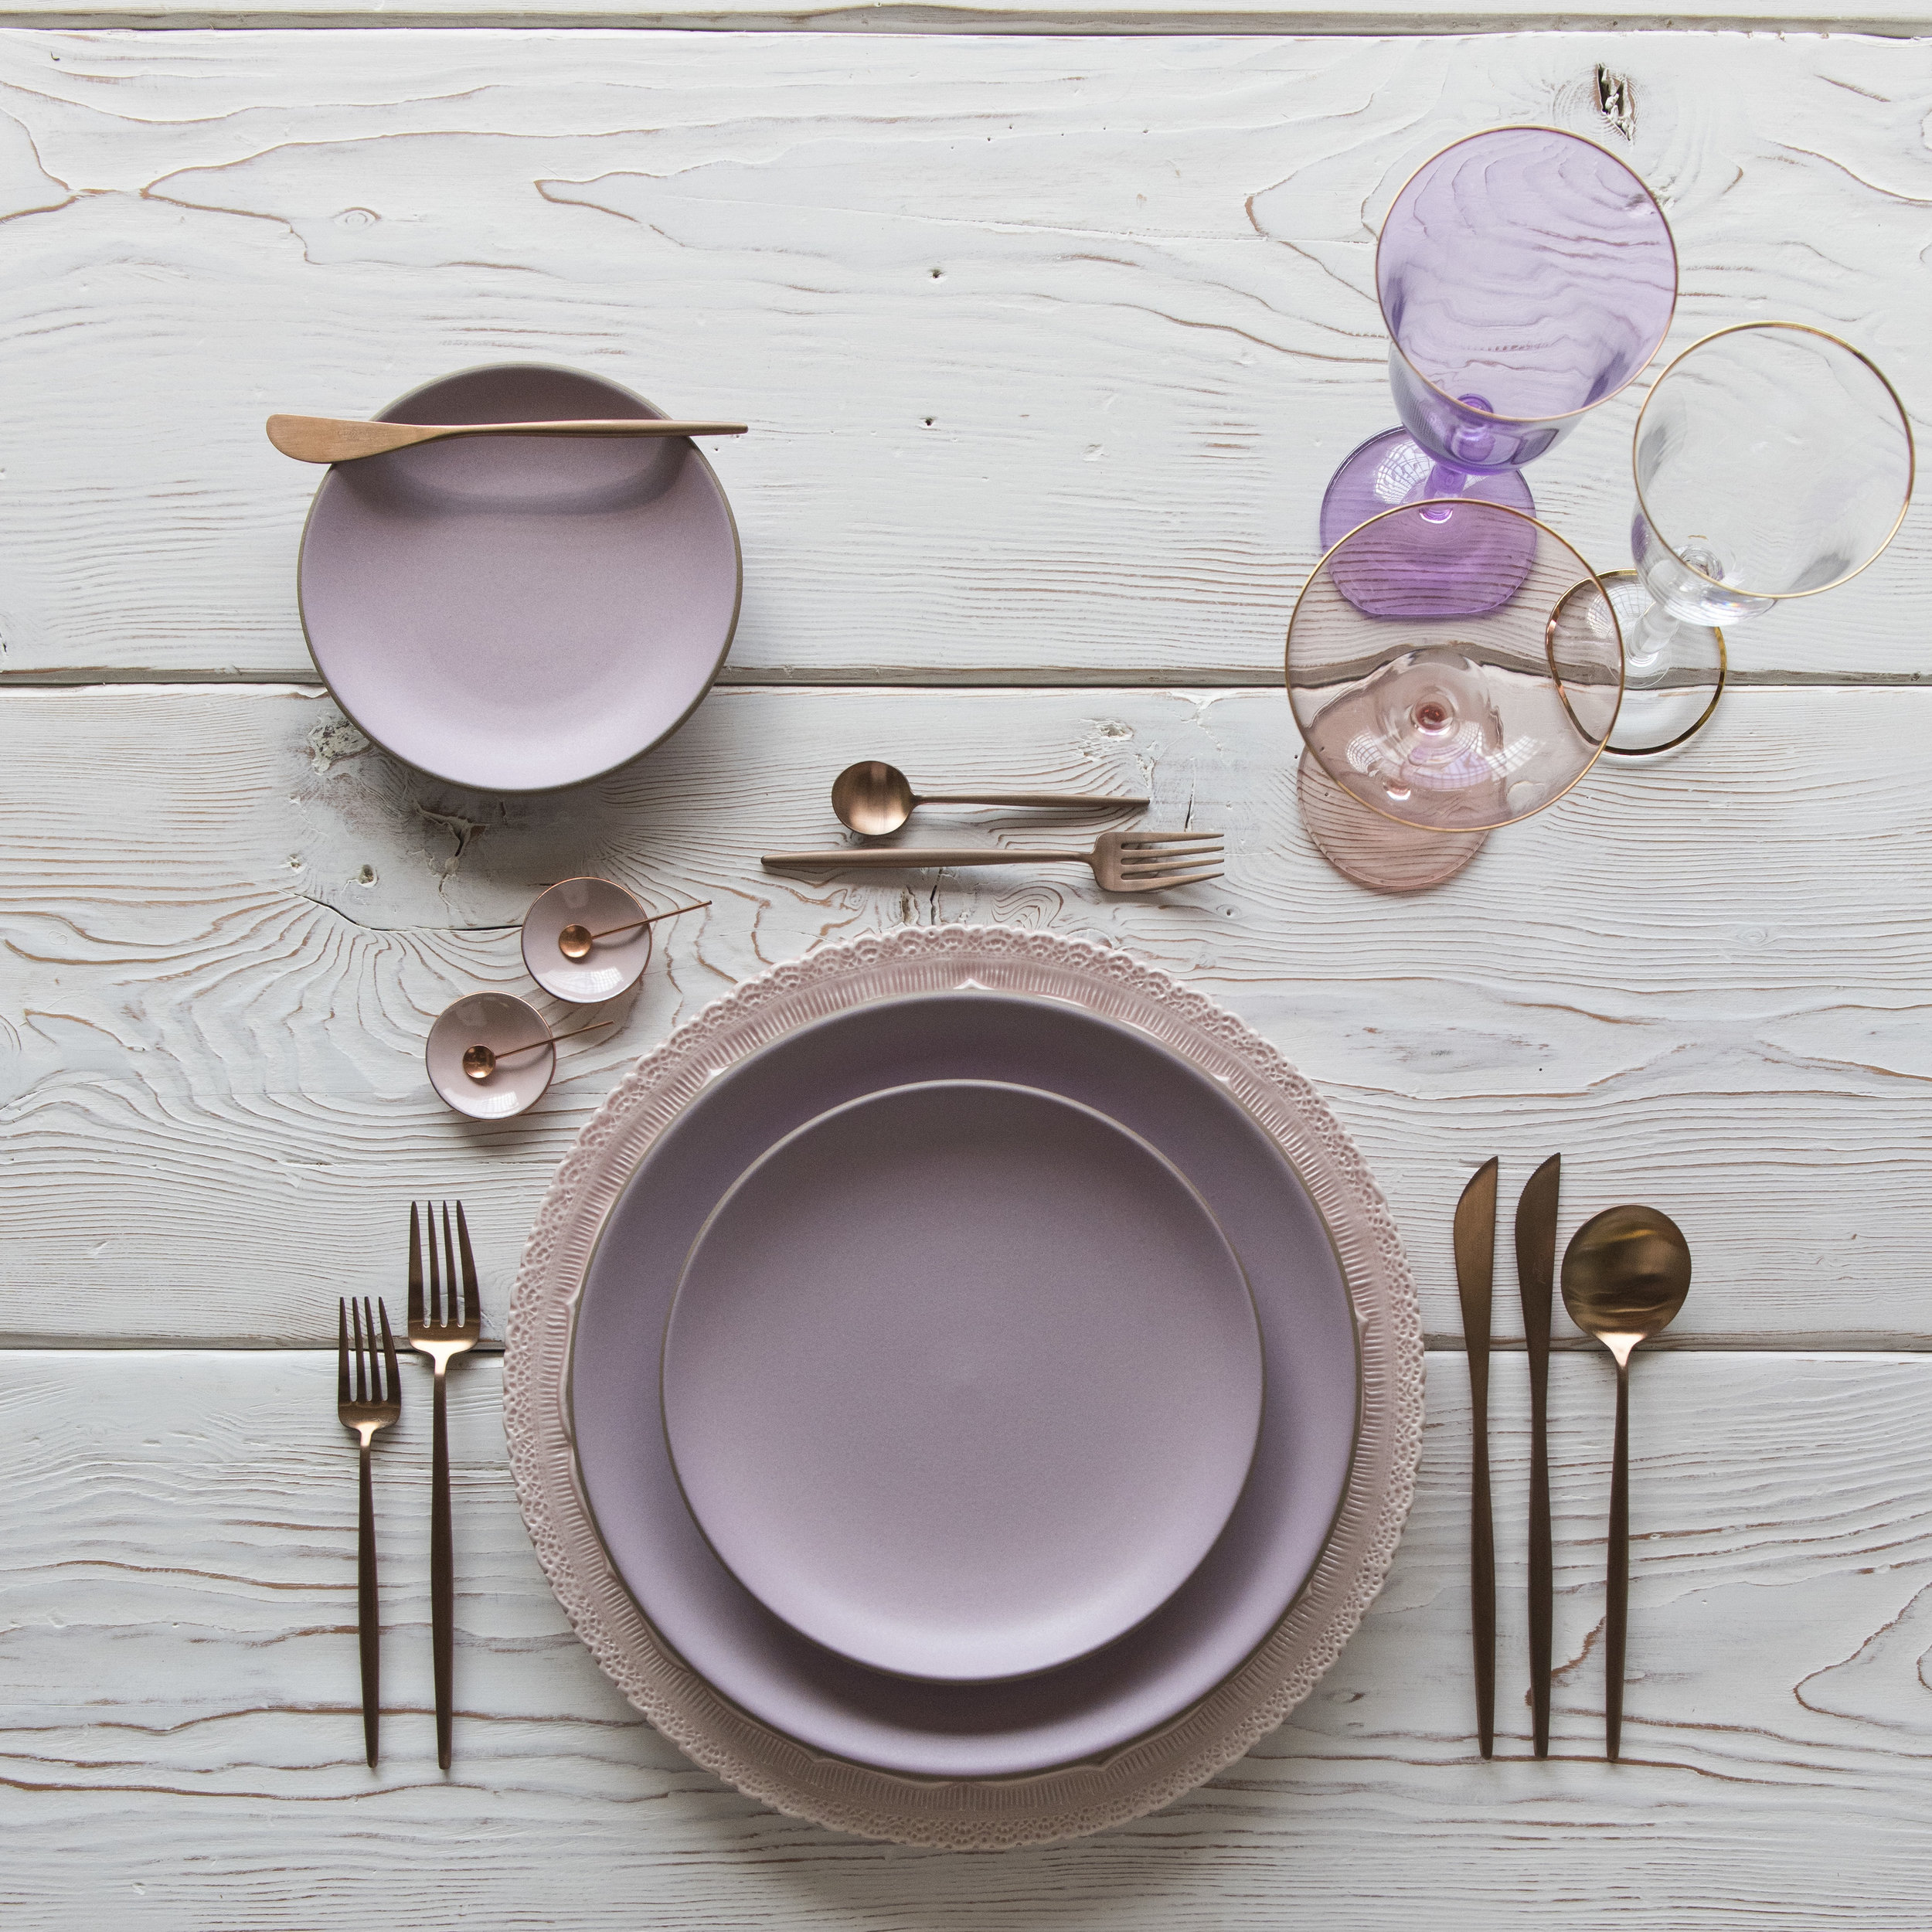 RENT: Lace Chargers in Blush + Custom Heath Ceramics in Wildflower + Moon Flatware in Brushed Rose Gold + Chloe 24k Gold Rimmed Stemware + Chloe 24k Gold Rimmed Goblet in Lilac + Bella 24k Gold Rimmed Stemware in Blush + Pink Enamel Salt Cellars + Tiny Copper Spoons  SHOP:Moon Flatware in Brushed Rose Gold + Chloe 24k Gold Rimmed Stemware + Bella 24k Gold Rimmed Stemware in Blush + Pink Enamel Salt Cellars + Tiny Copper Spoons